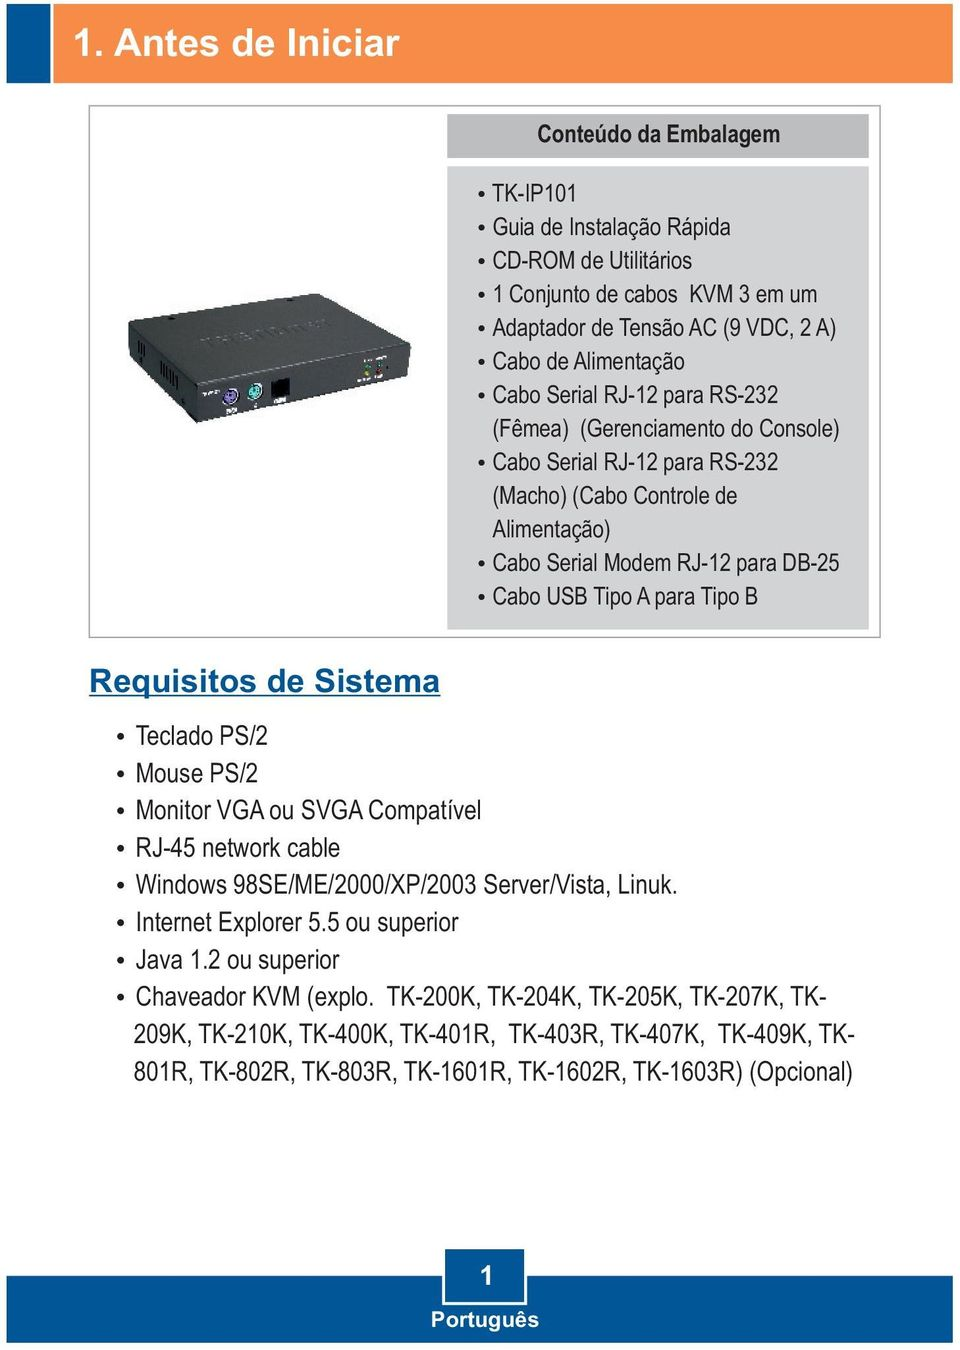 Requisitos de Sistema Teclado PS/2 Mouse PS/2 Monitor VGA ou SVGA Compatível RJ-45 network cable Windows 98SE/ME/2000/XP/2003 Server/Vista, Linuk. Internet Explorer 5.5 ou superior Java 1.